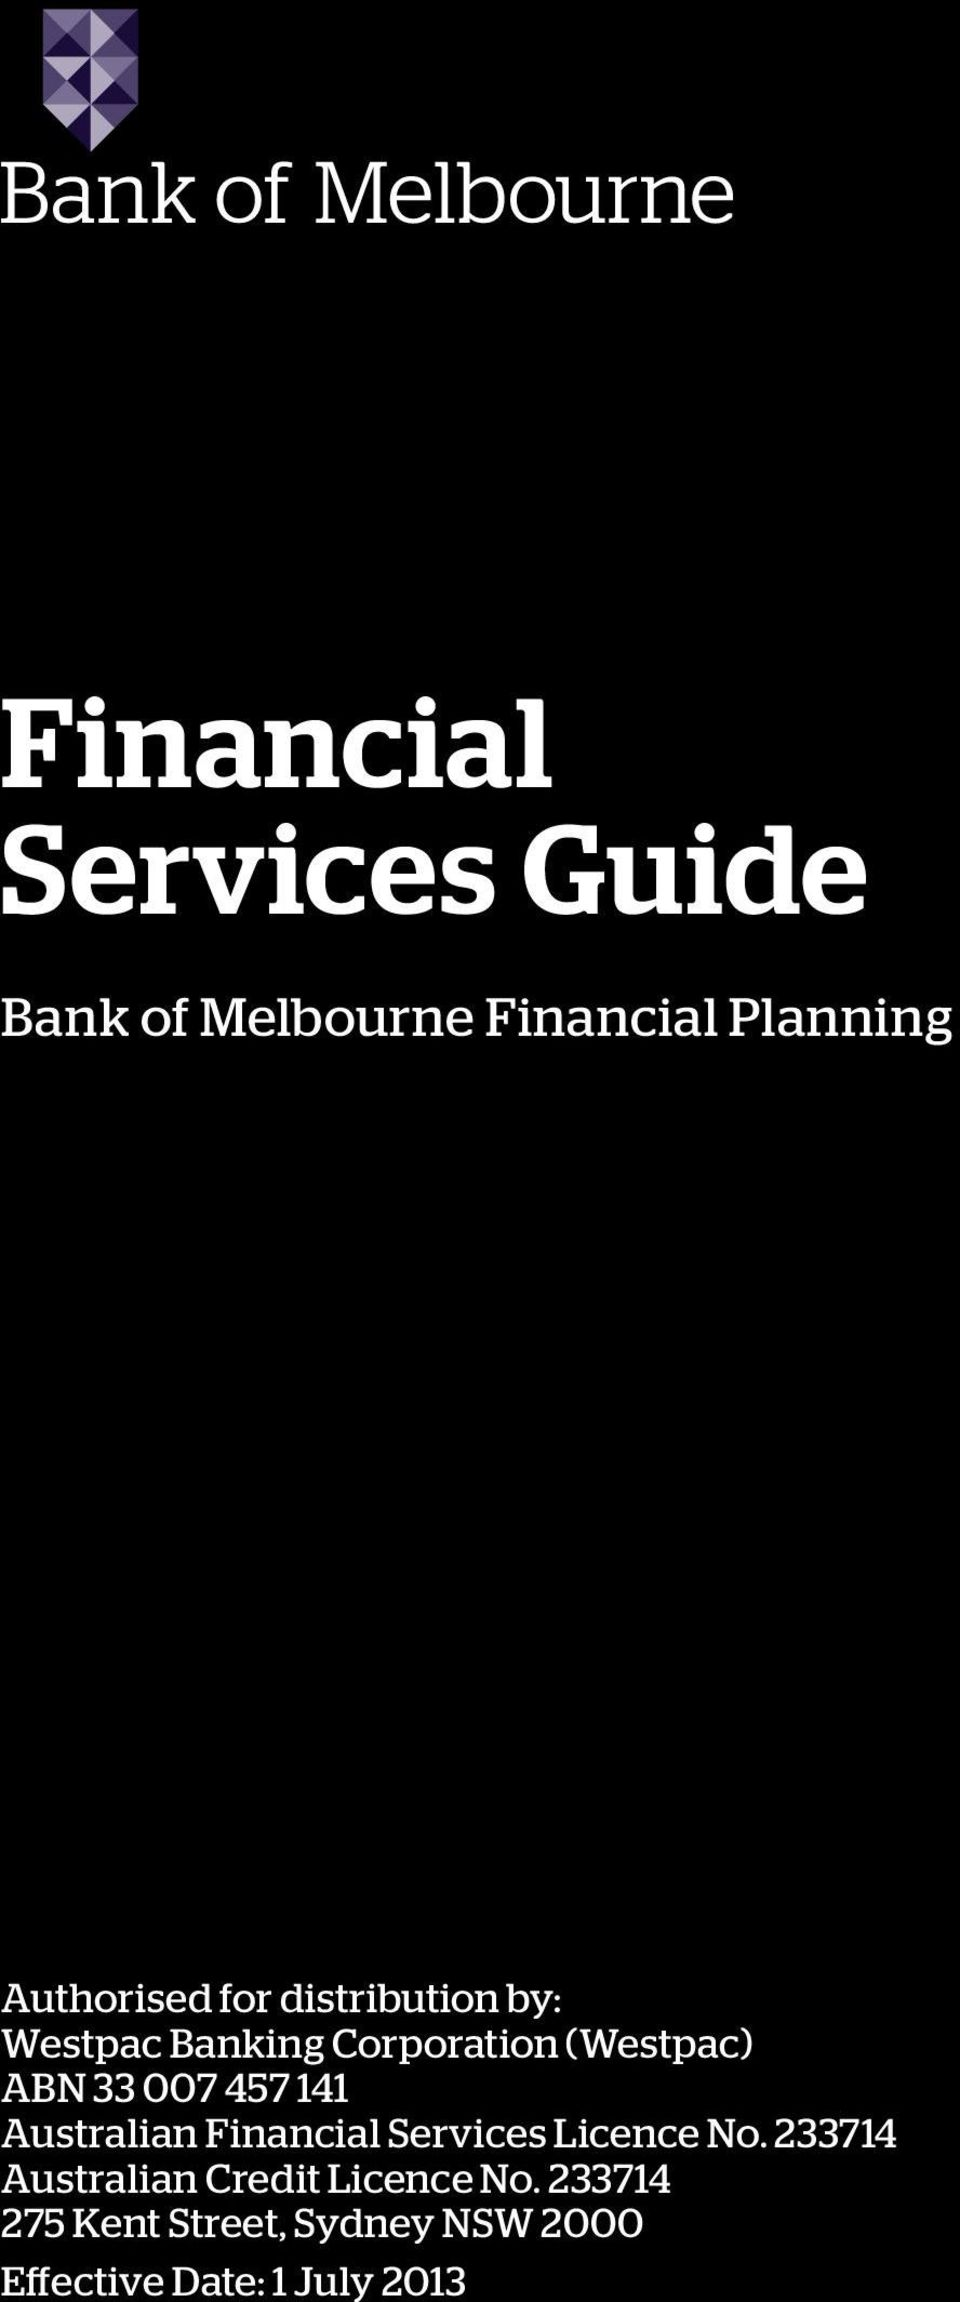 141 Australian Financial Services Licence No.